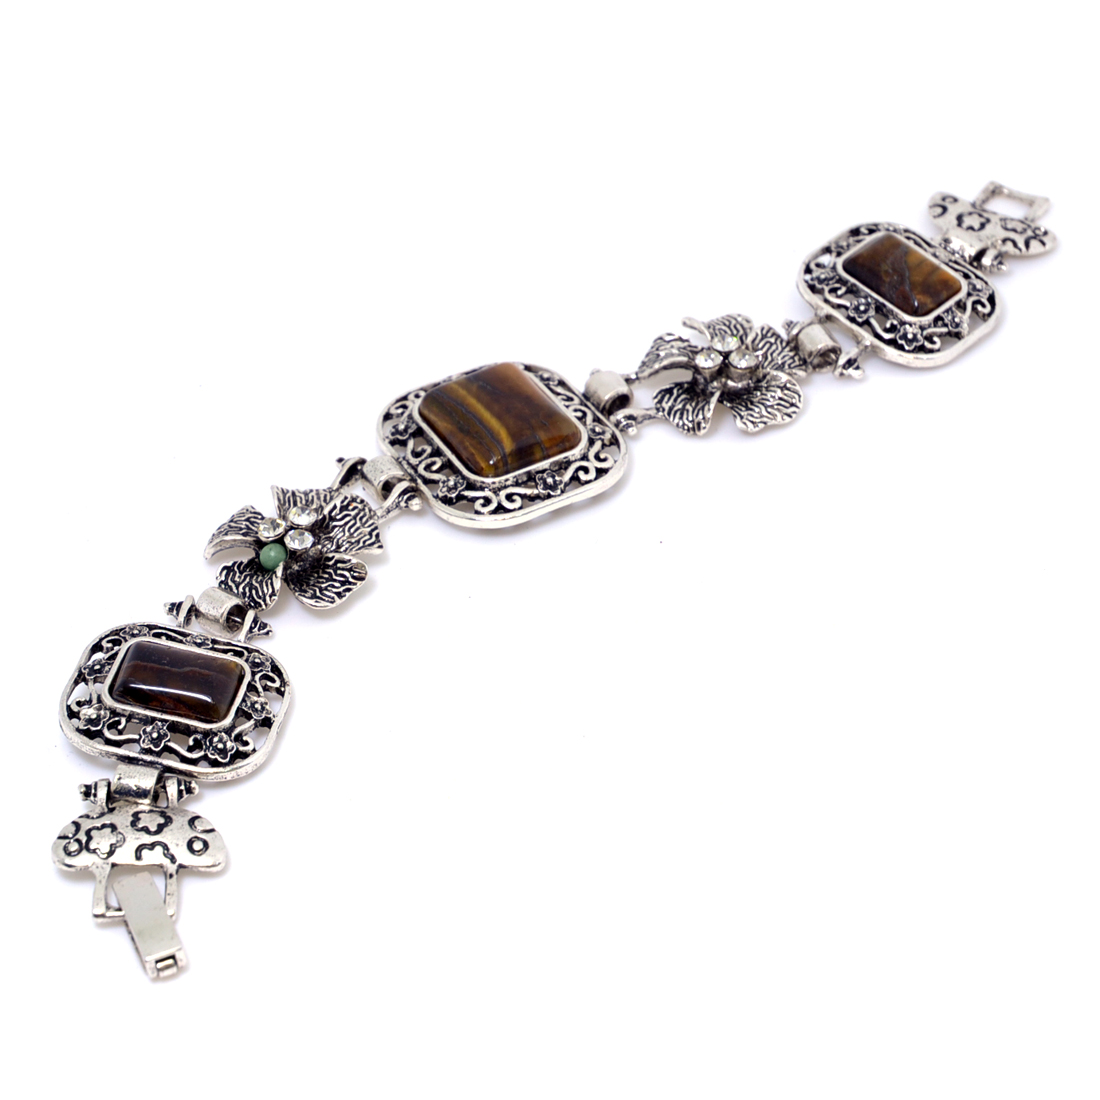 Silver Tone Bracelets with Natural Stone Accent and Rhinestone Florets